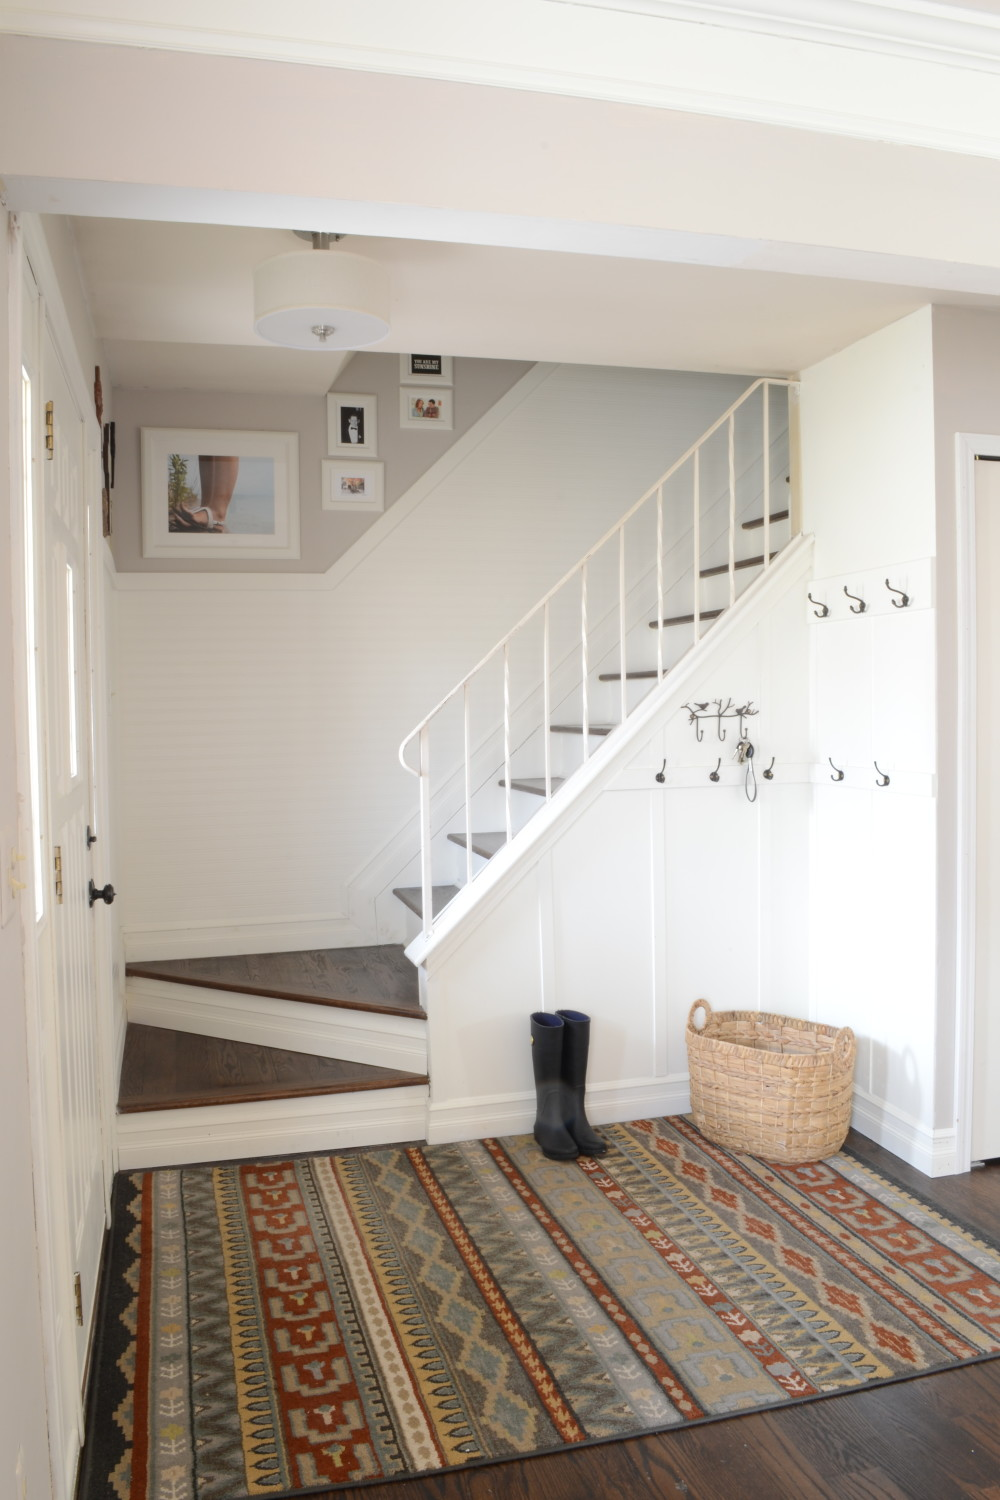 Mini Home Tour: The Entryway